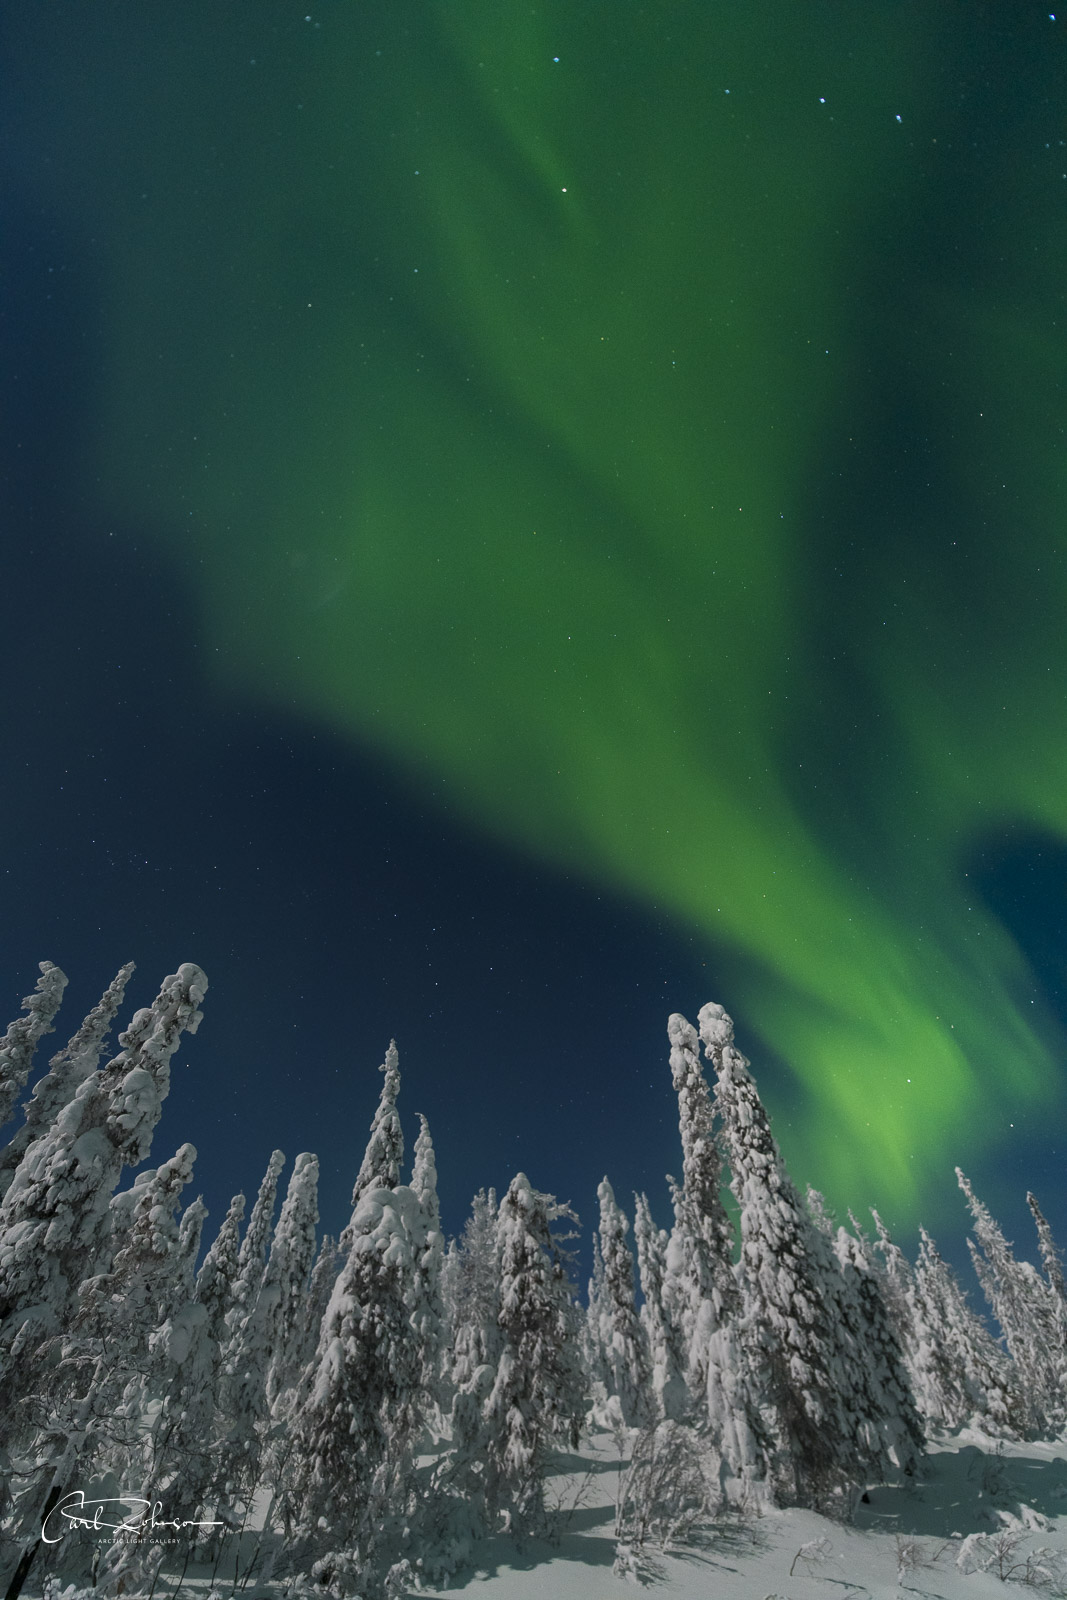 The aurora borealis dances over a cluster of snowy trees.